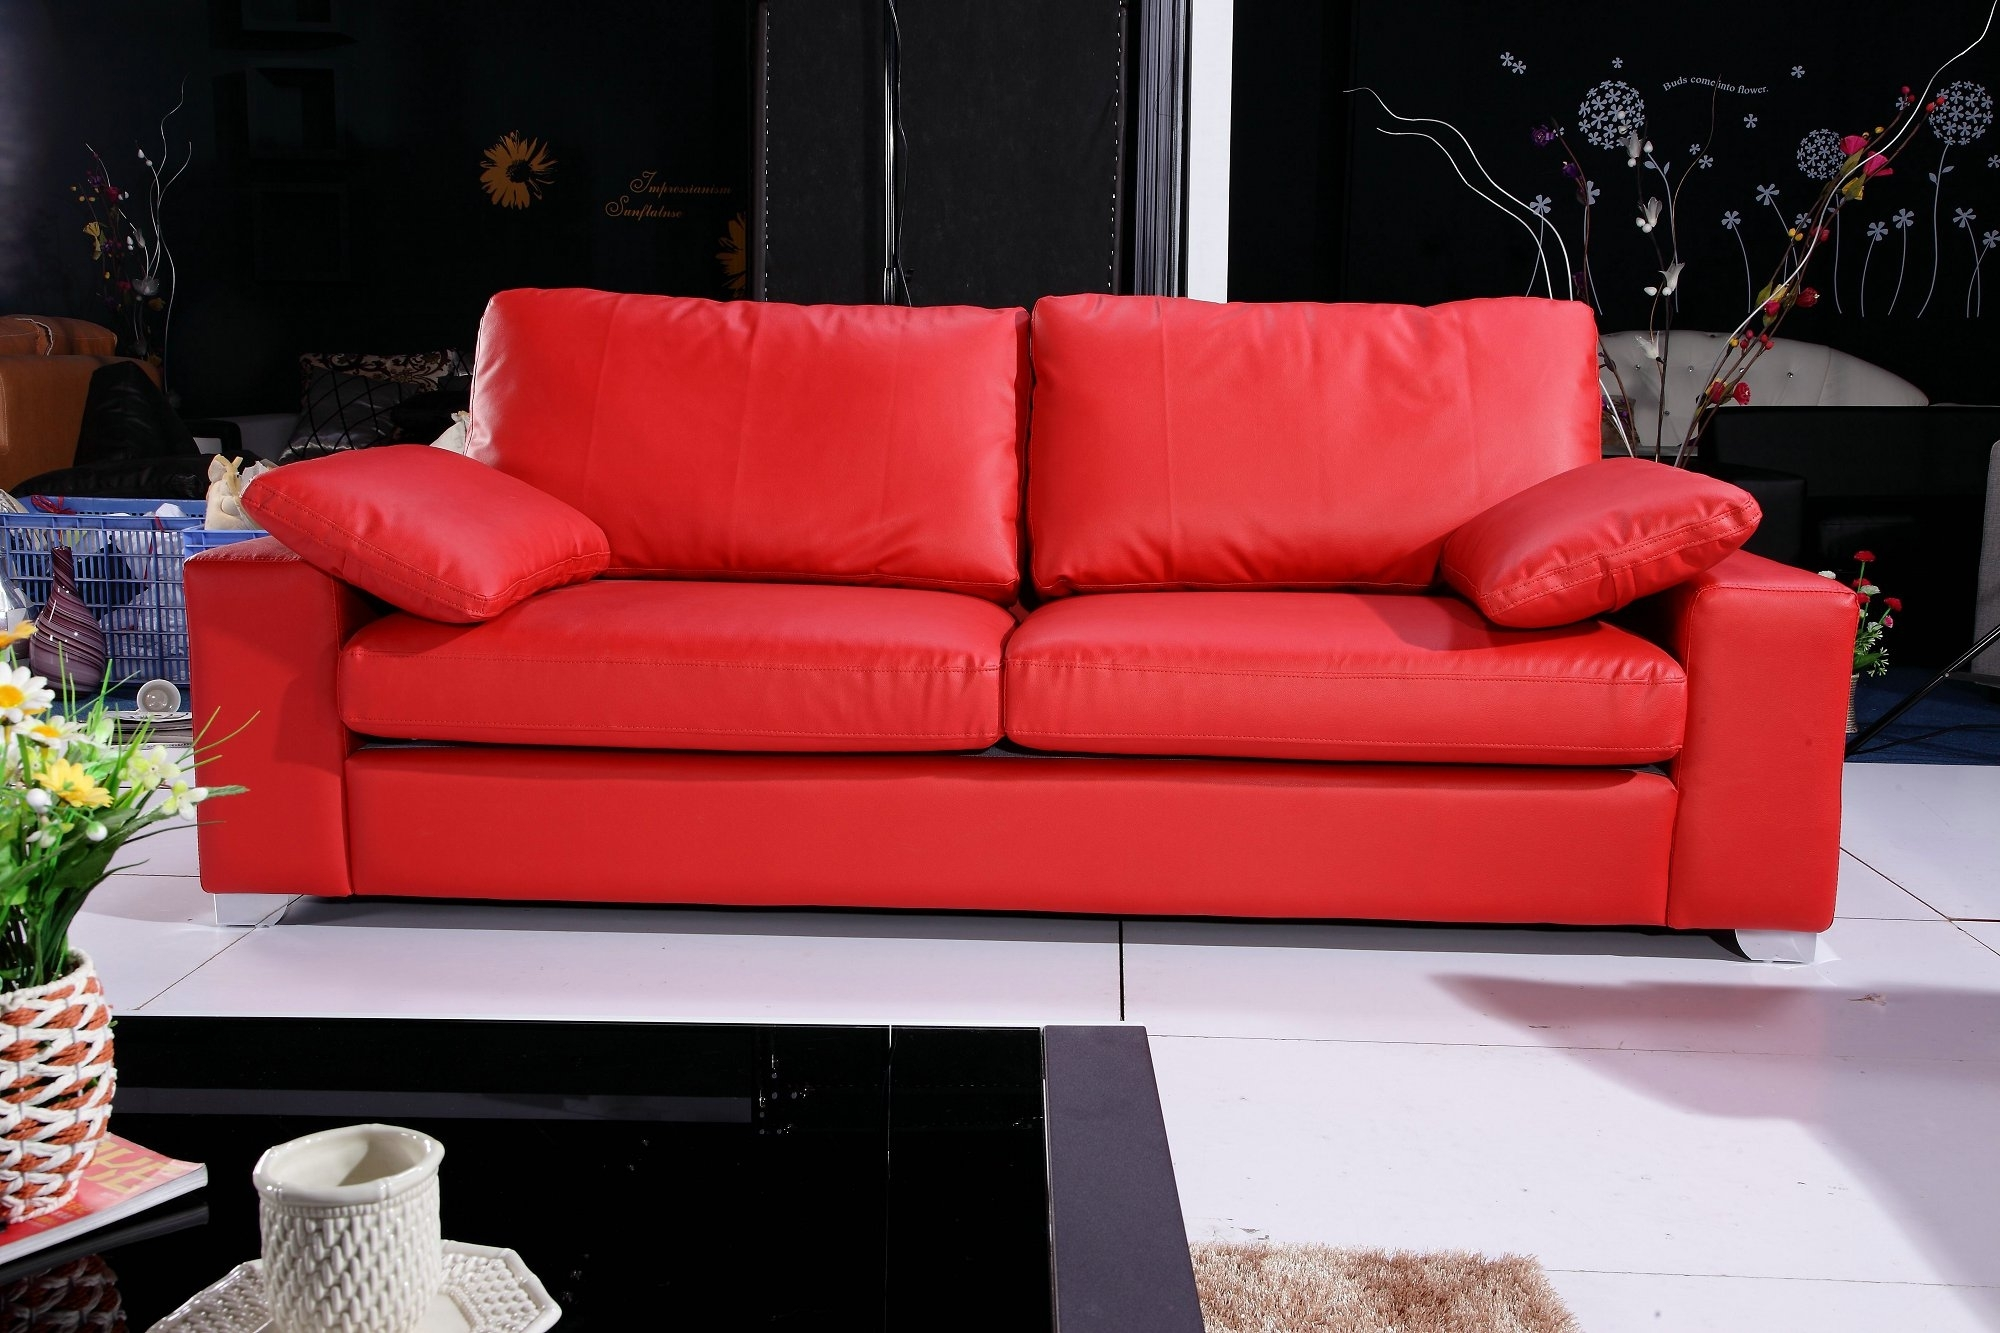 Images About Red Sofa Room On Pinterest Couches And Leather ~ Idolza with Red Leather Couches and Loveseats (Image 5 of 15)